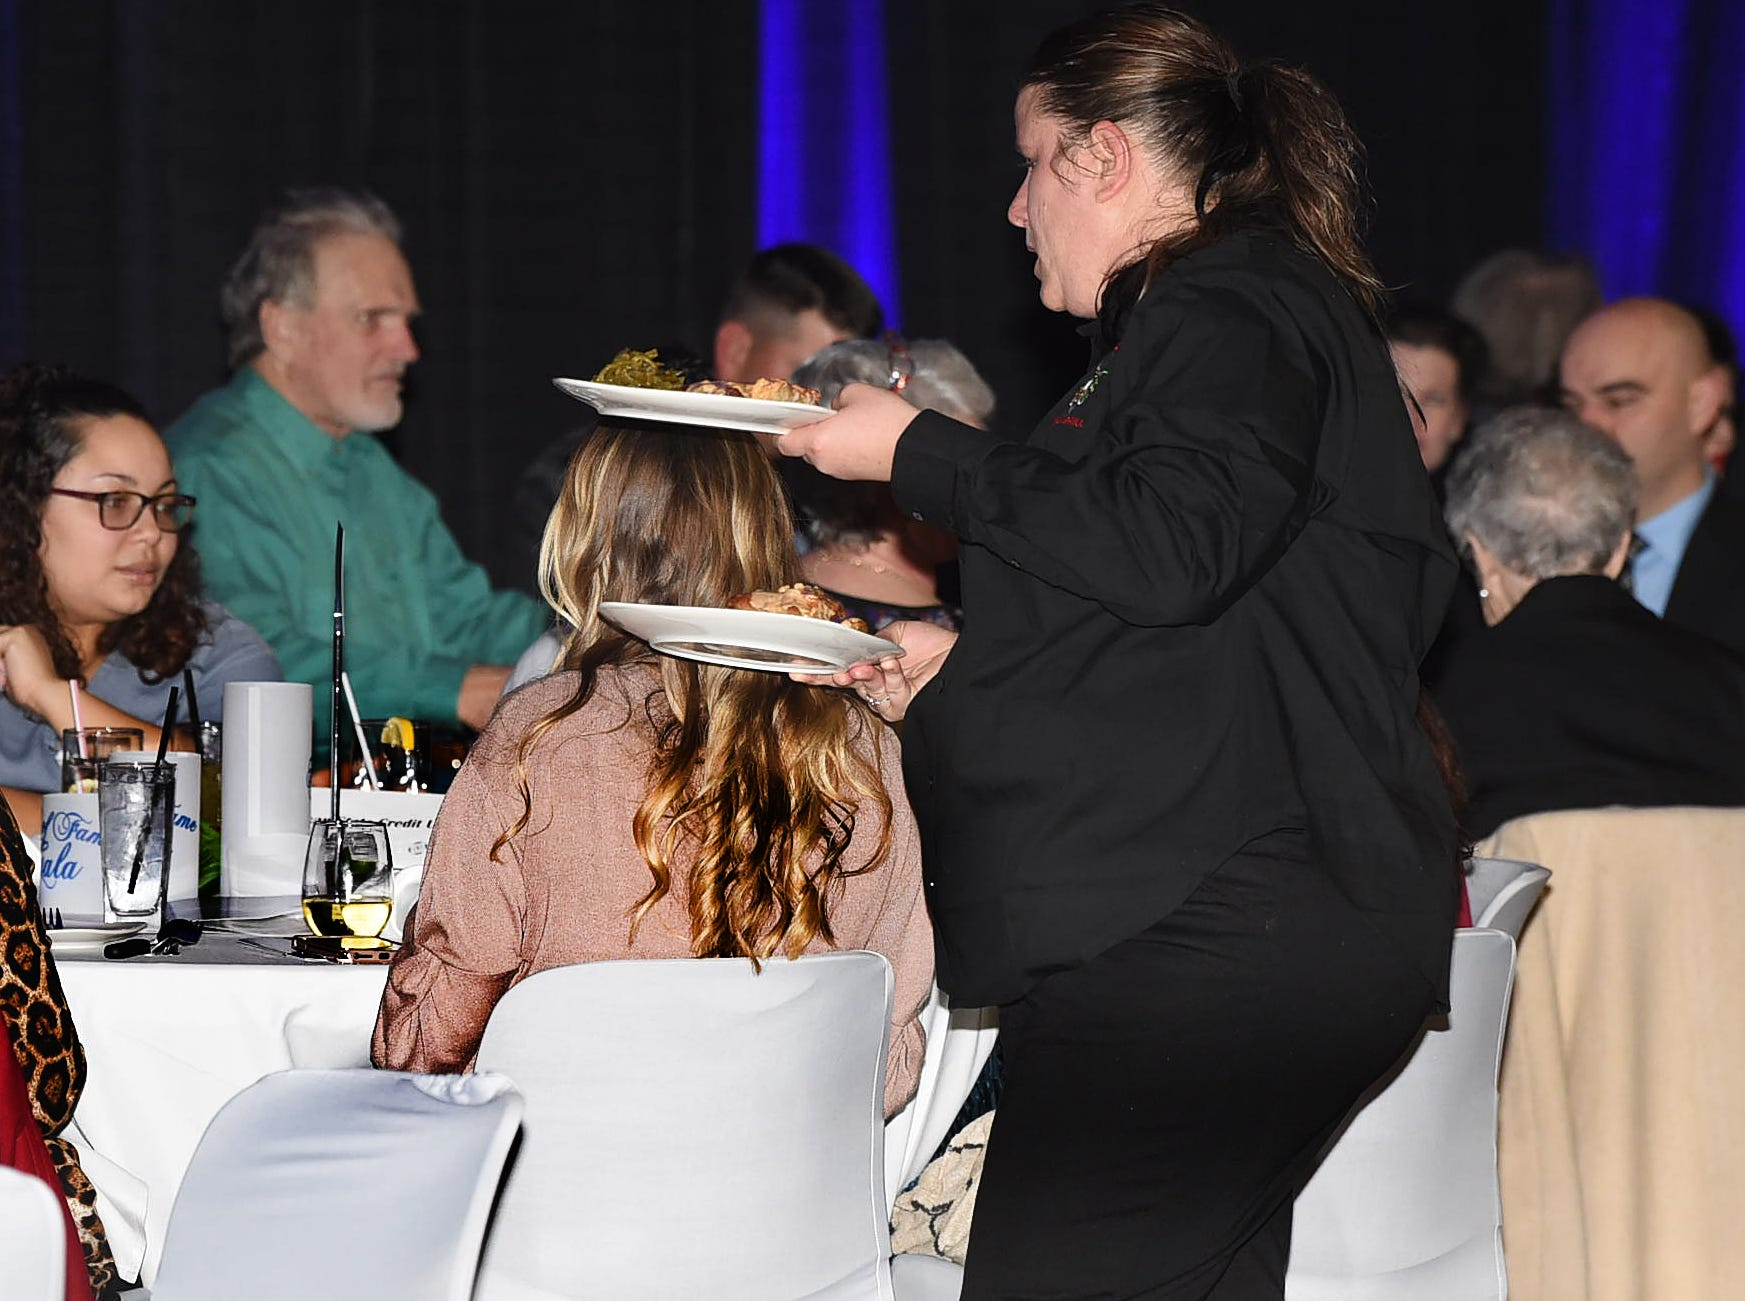 Opelousas General Health System Hall of Fame Gala held Thursday at the Opelousas Civic Center.